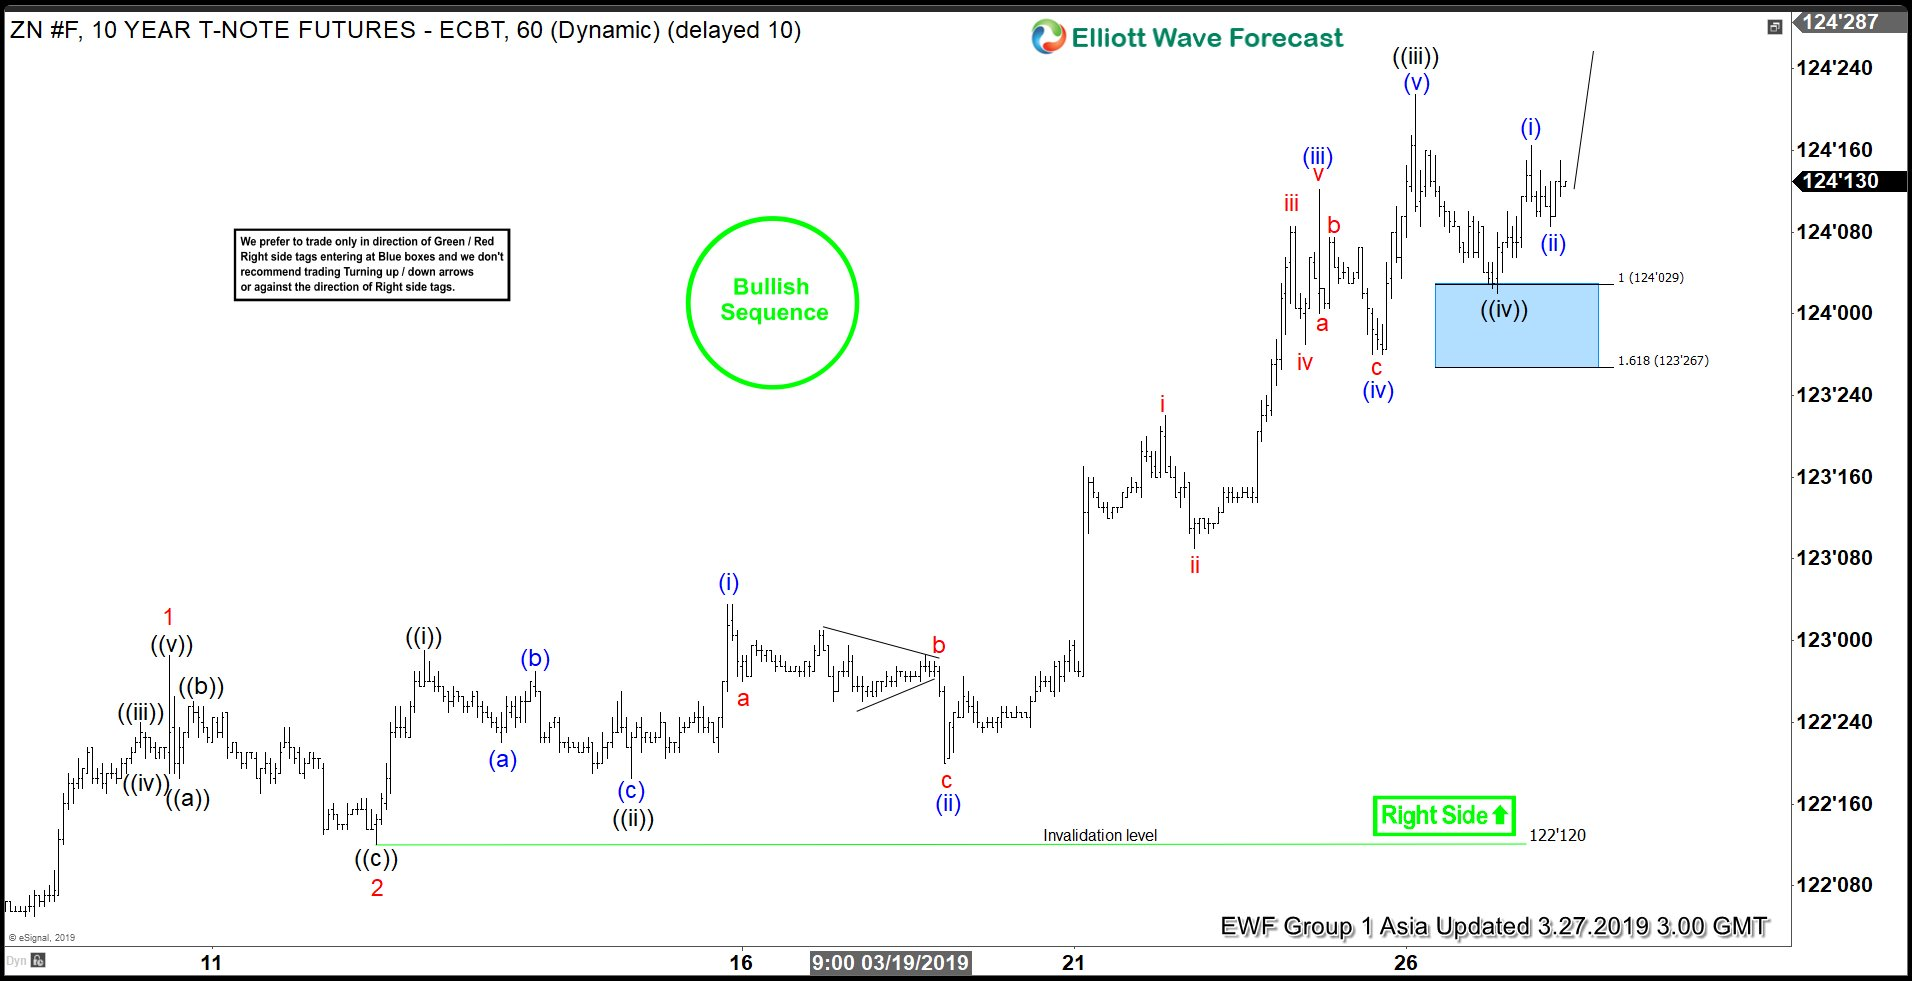 Elliott Wave View: Further Strength Ahead for 10 Year Notes (ZN_F)